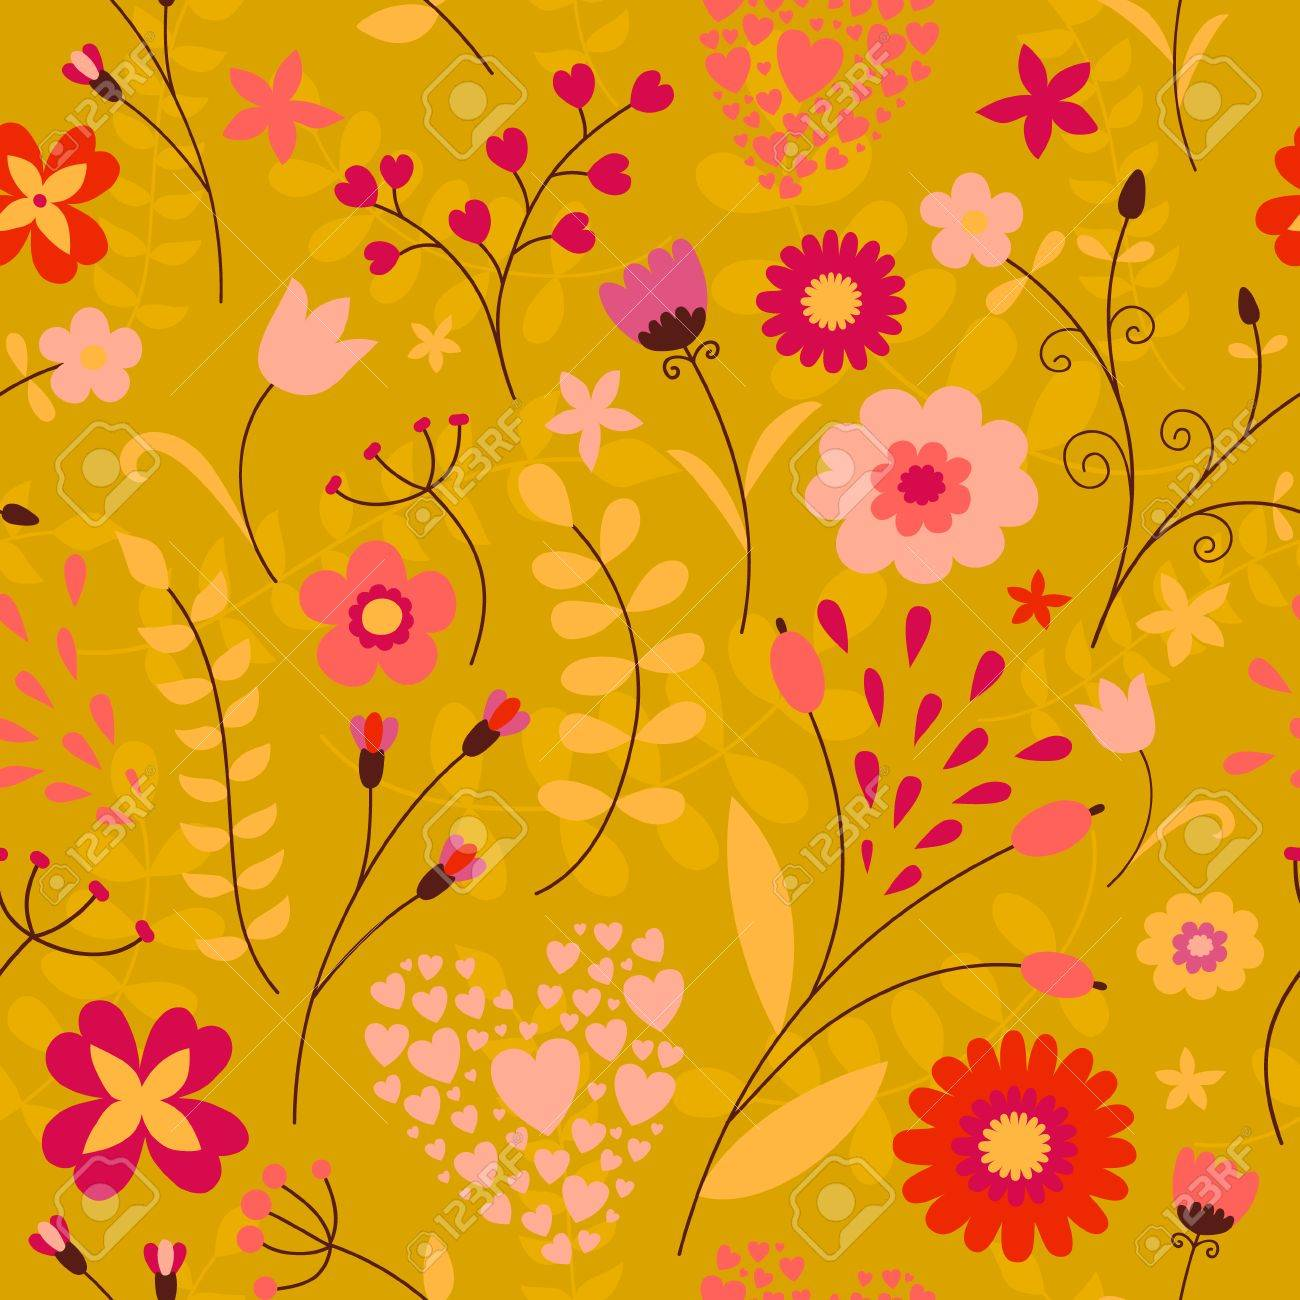 Cute colorful floral seamless pattern in children\'s style - 33854579